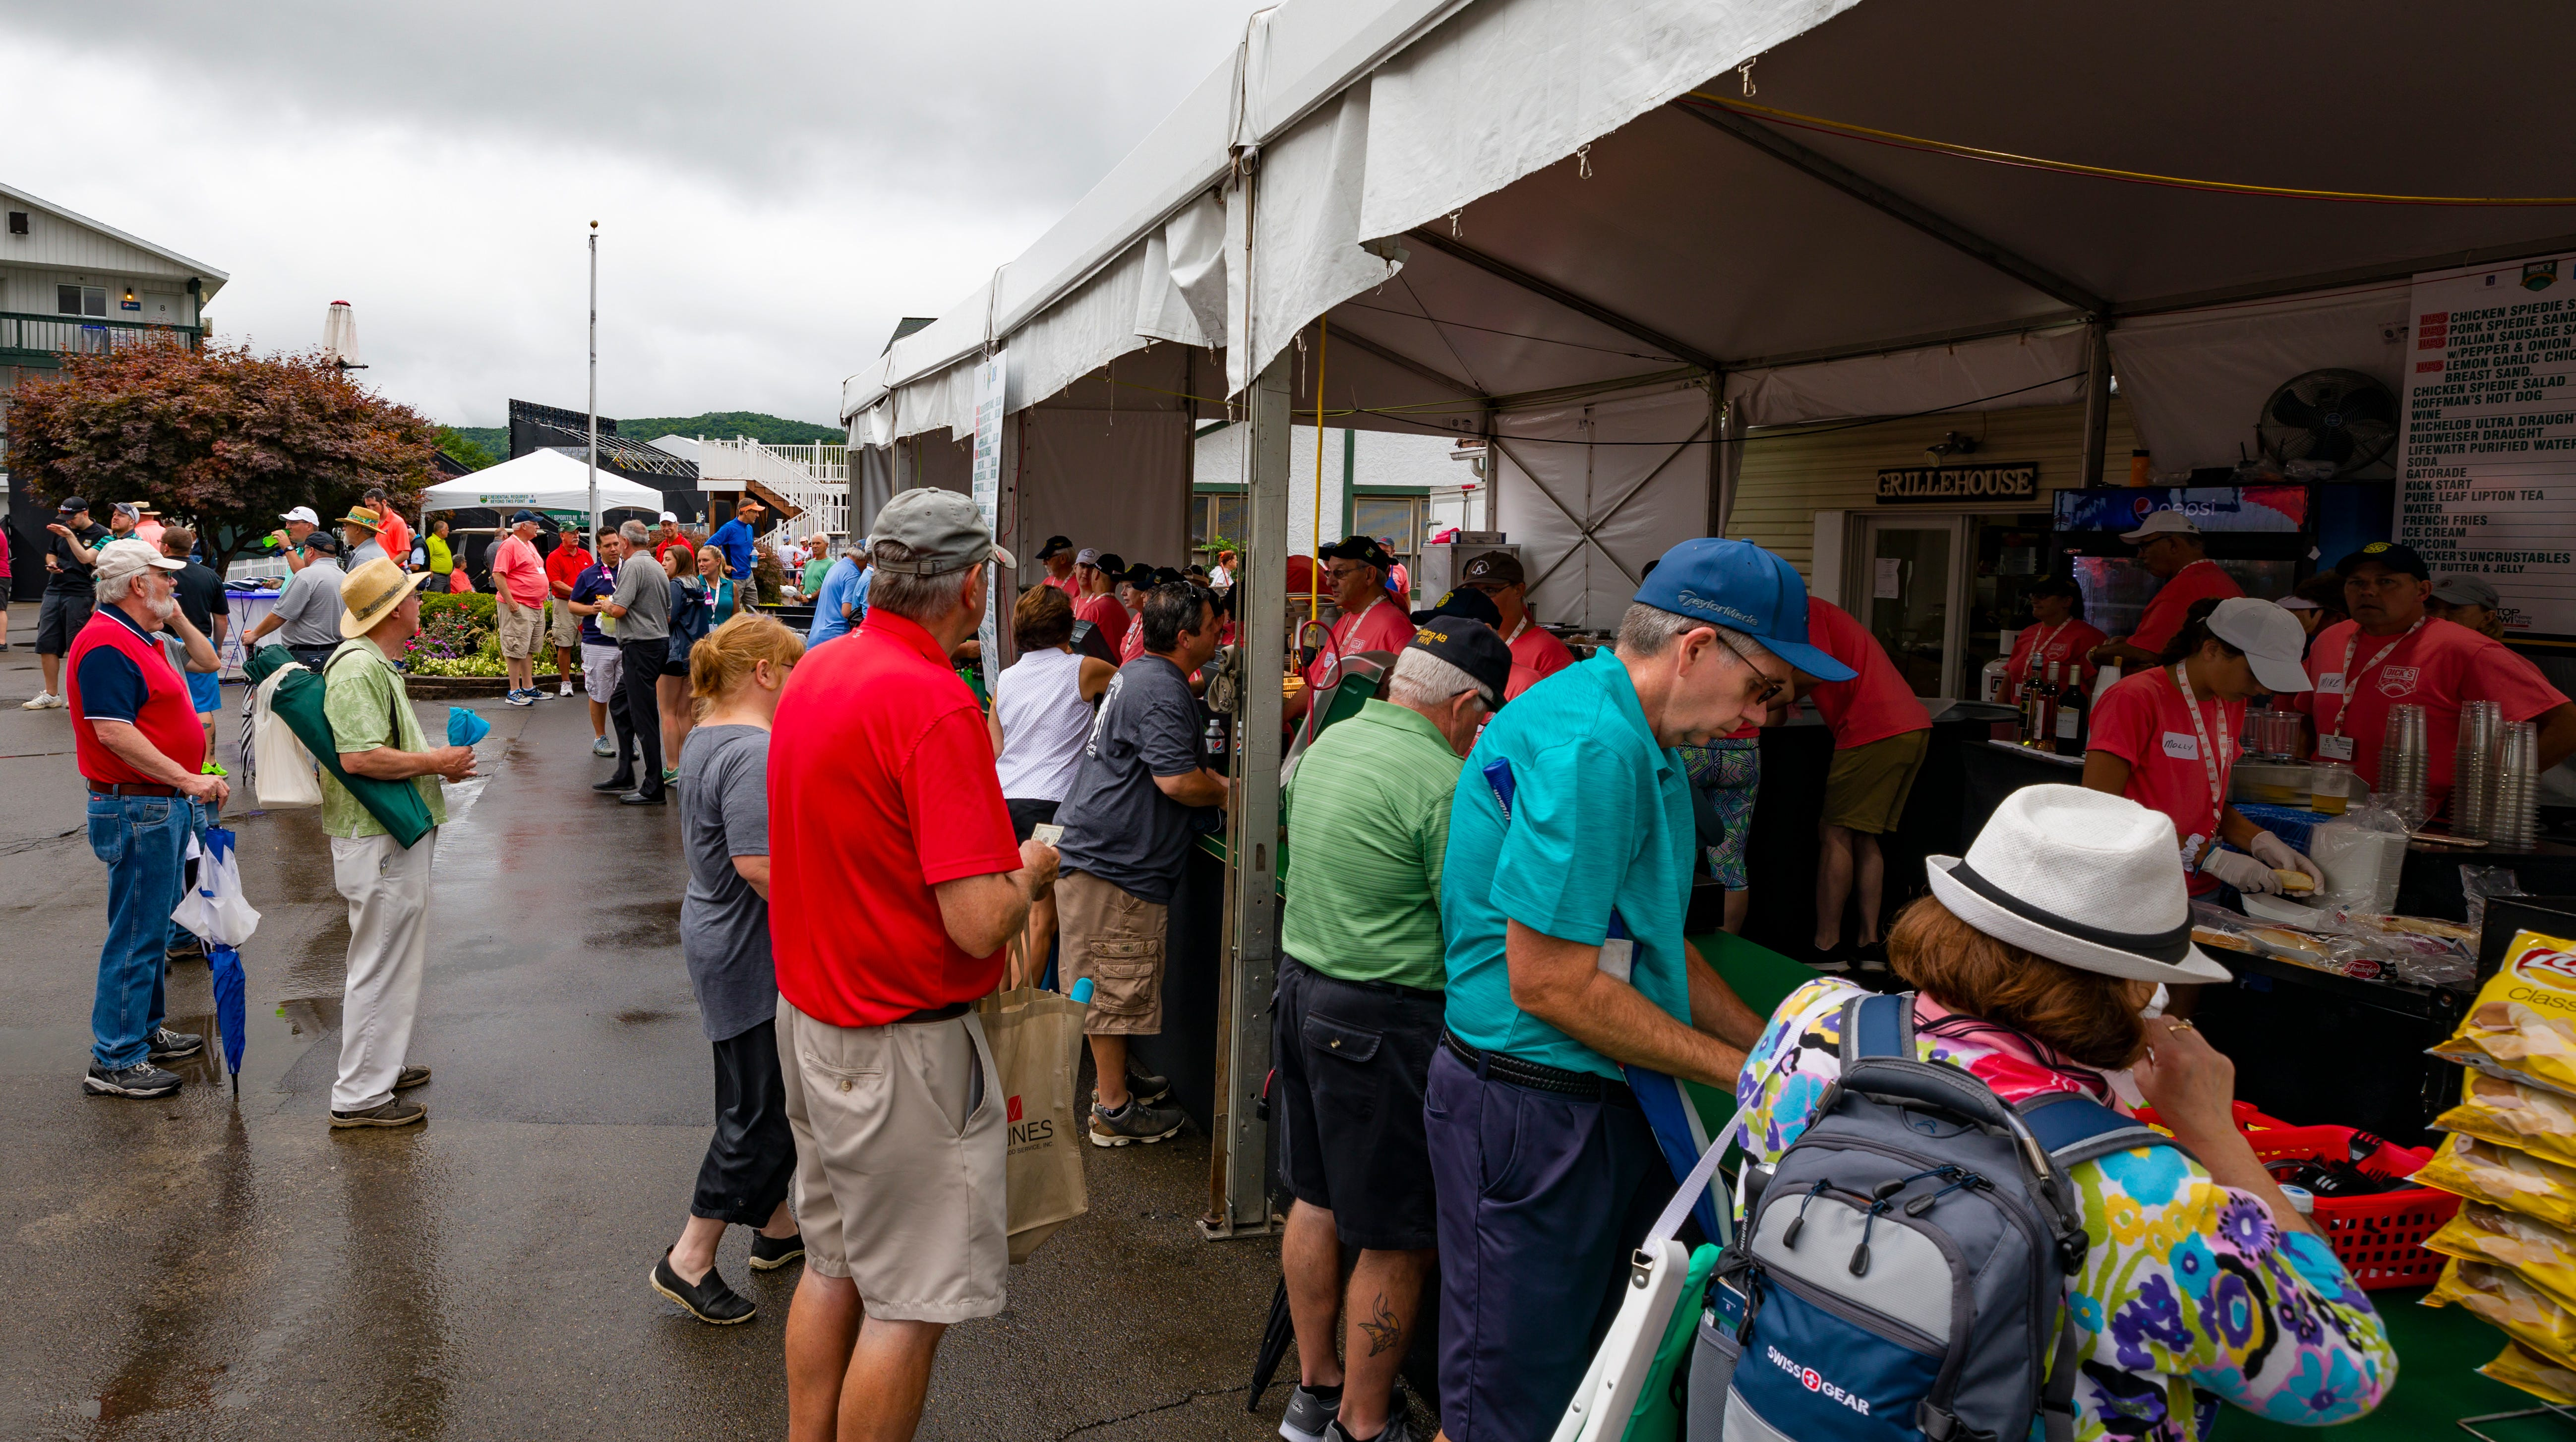 Fans made the best of wet conditions during a three hour rain delay at the Dick's Sporting Goods Open on Saturday.